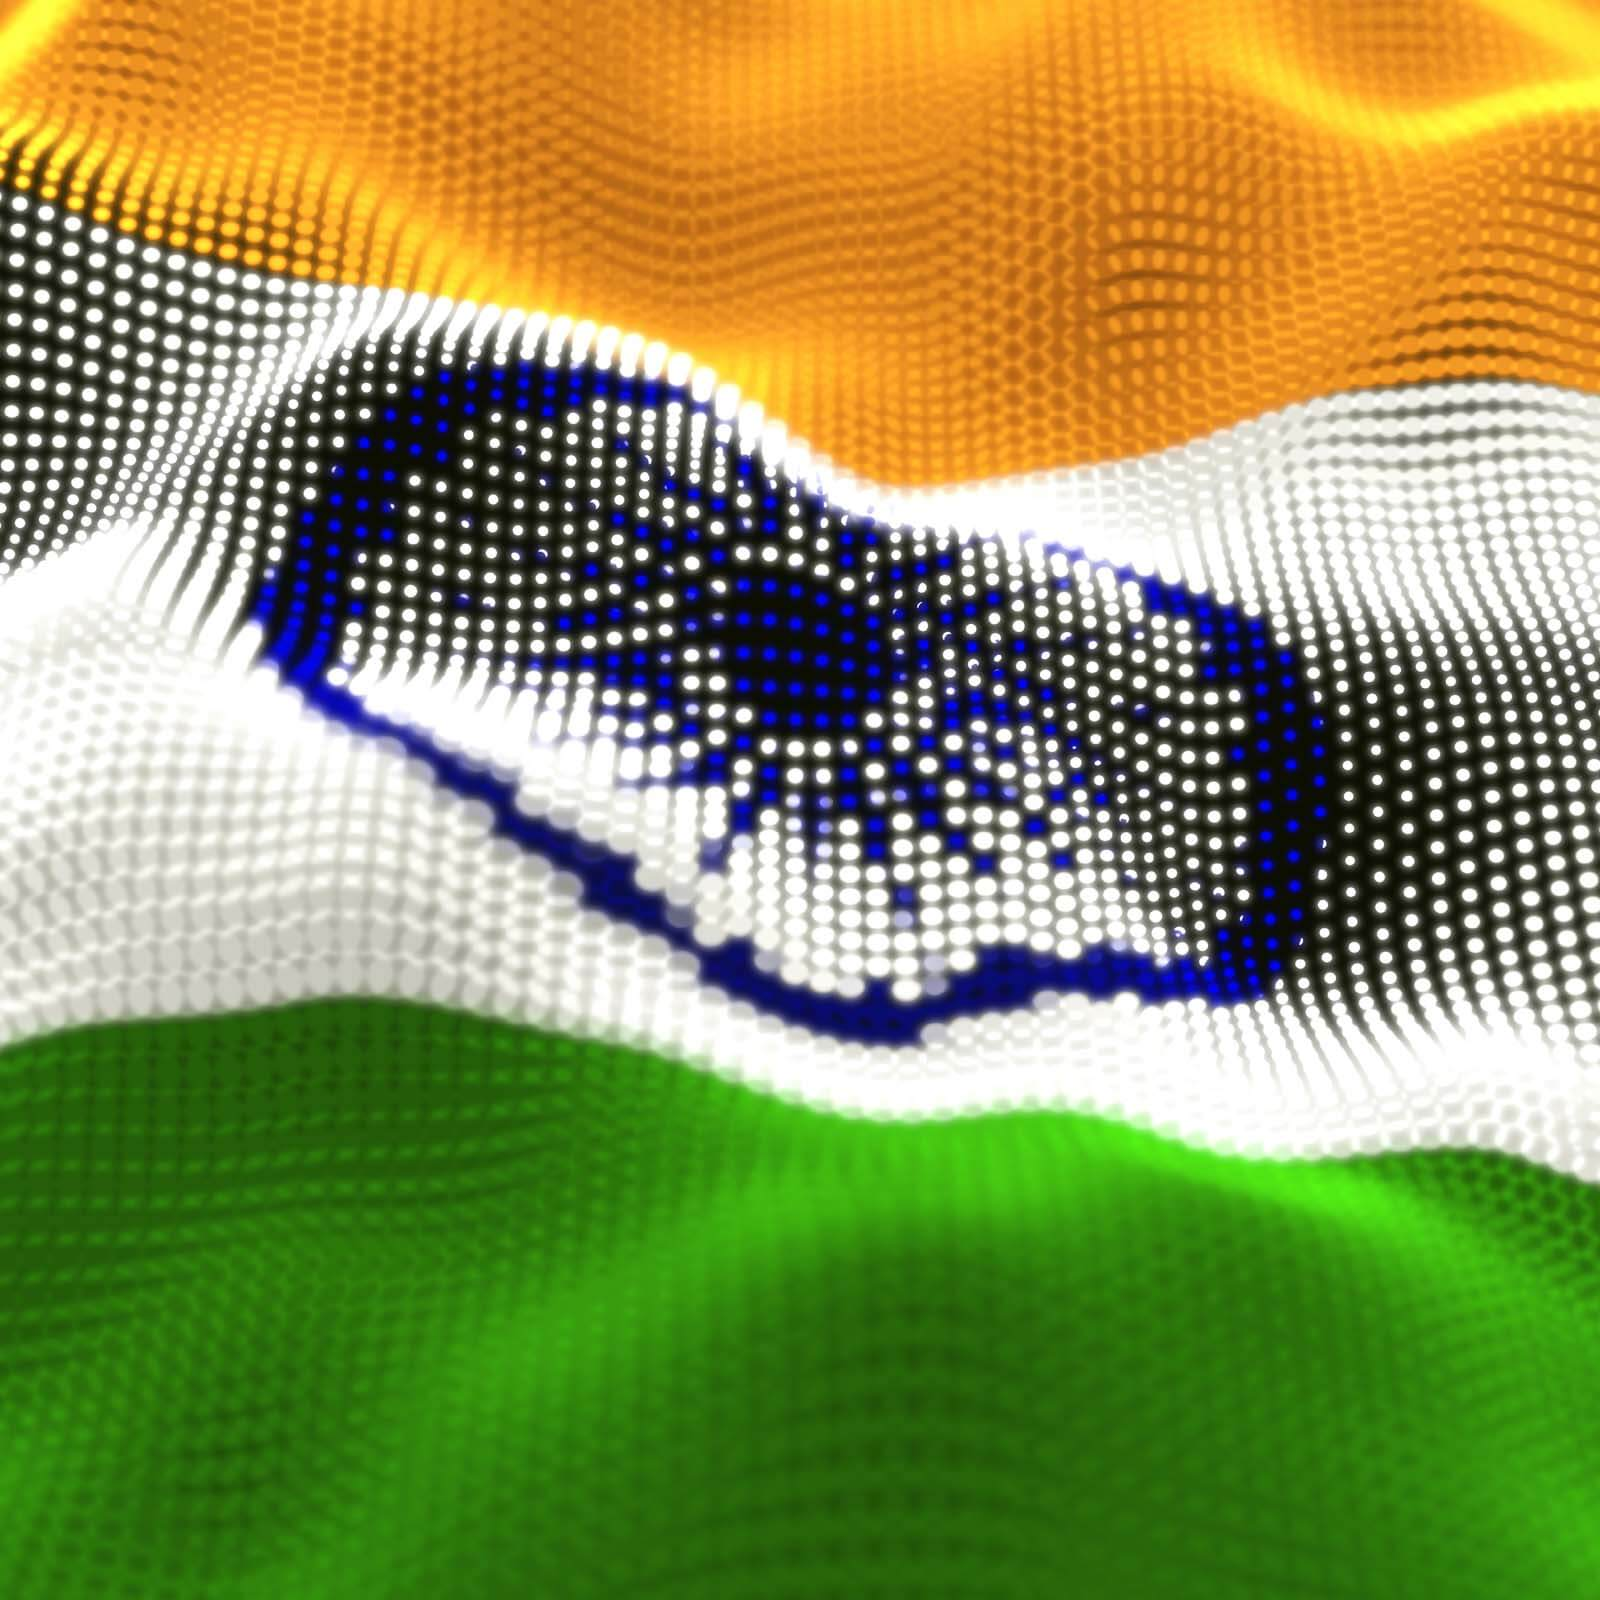 Vajra Platform: an Indian Government Finally Says YES to a Blockchain Technology